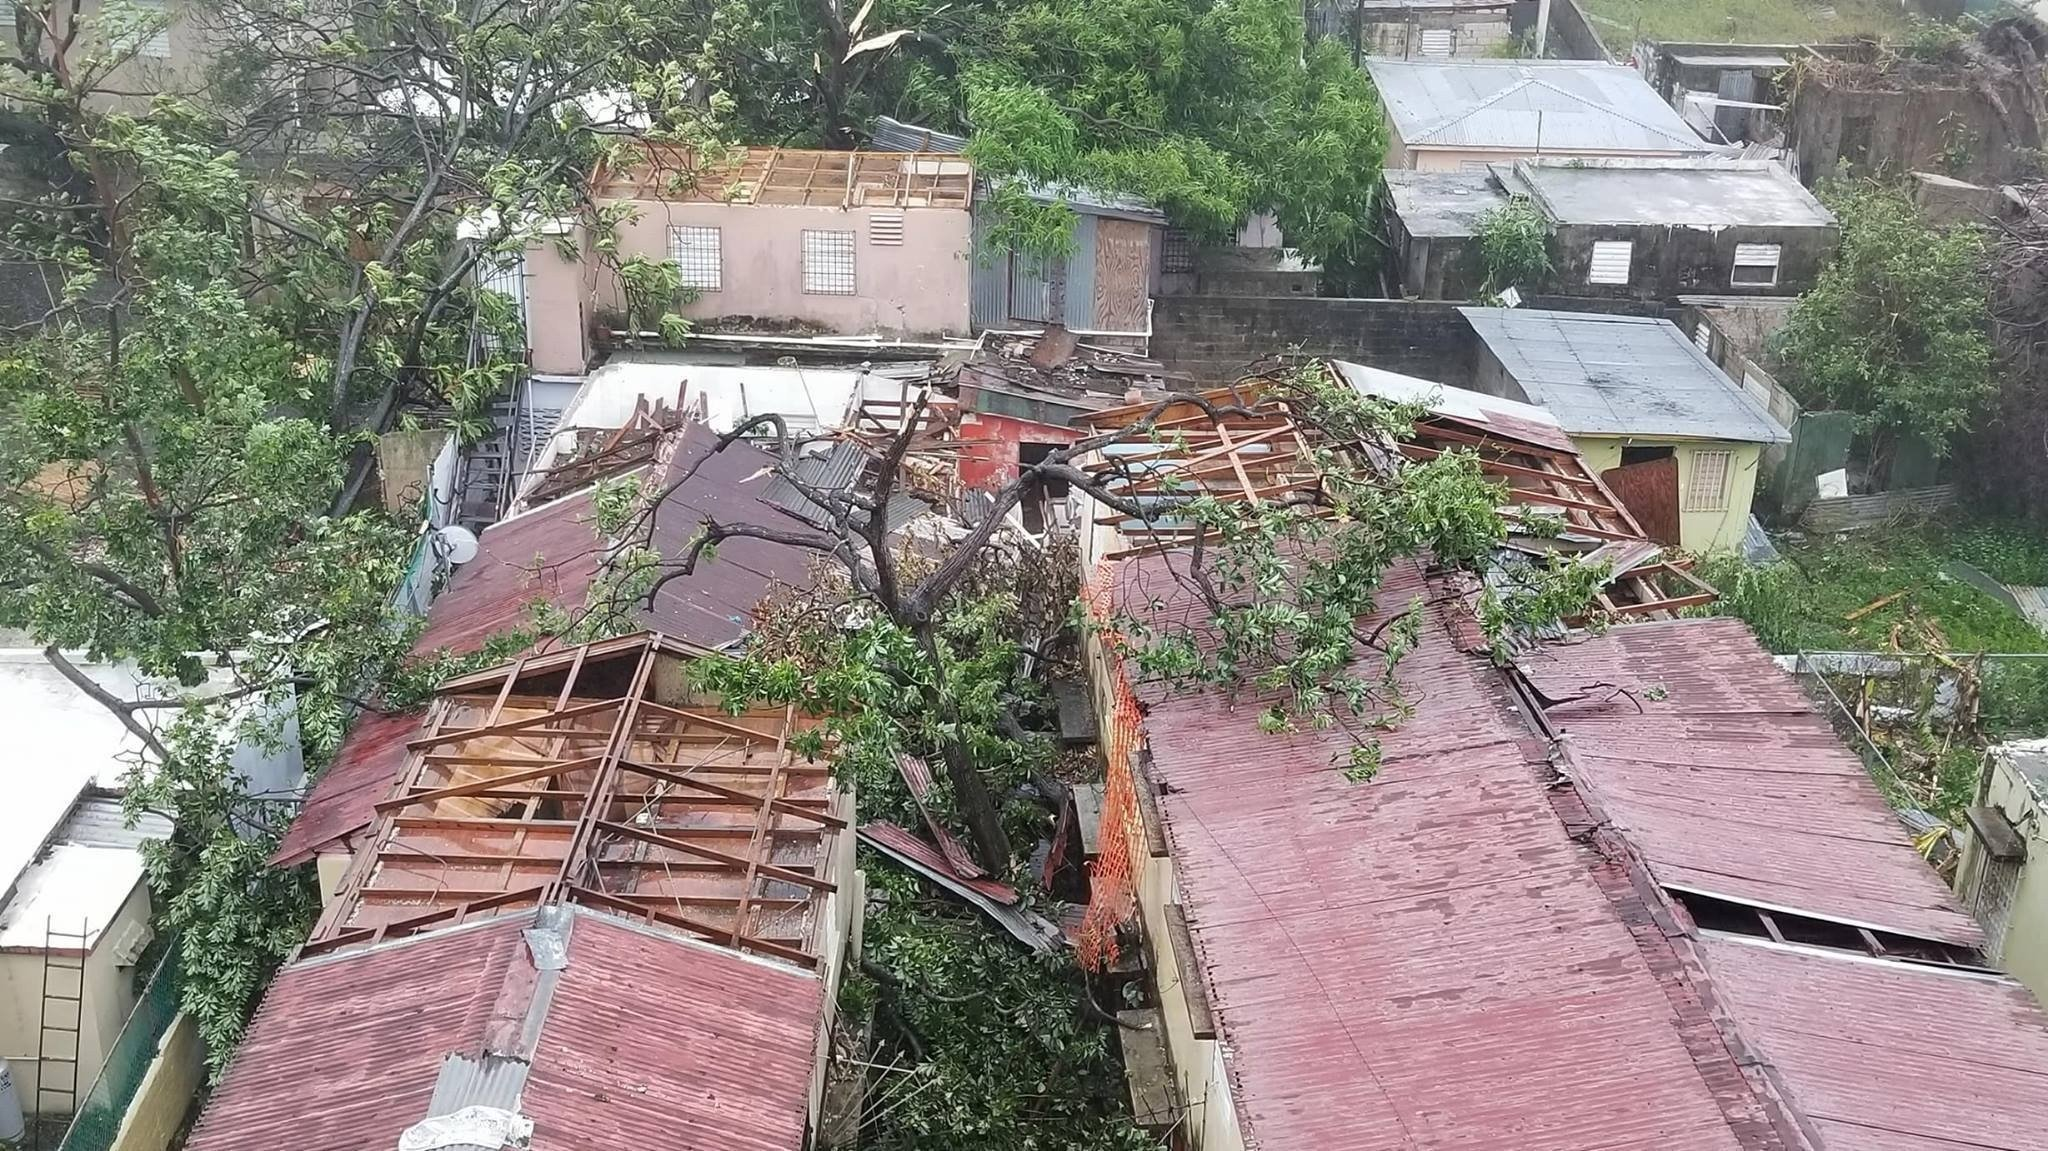 Roofs ripped off houses in San Juan, Puerto Rico as Hurricane Maria slammed into the city on Sept. 20. (photo credit: Fred Rasmussen)